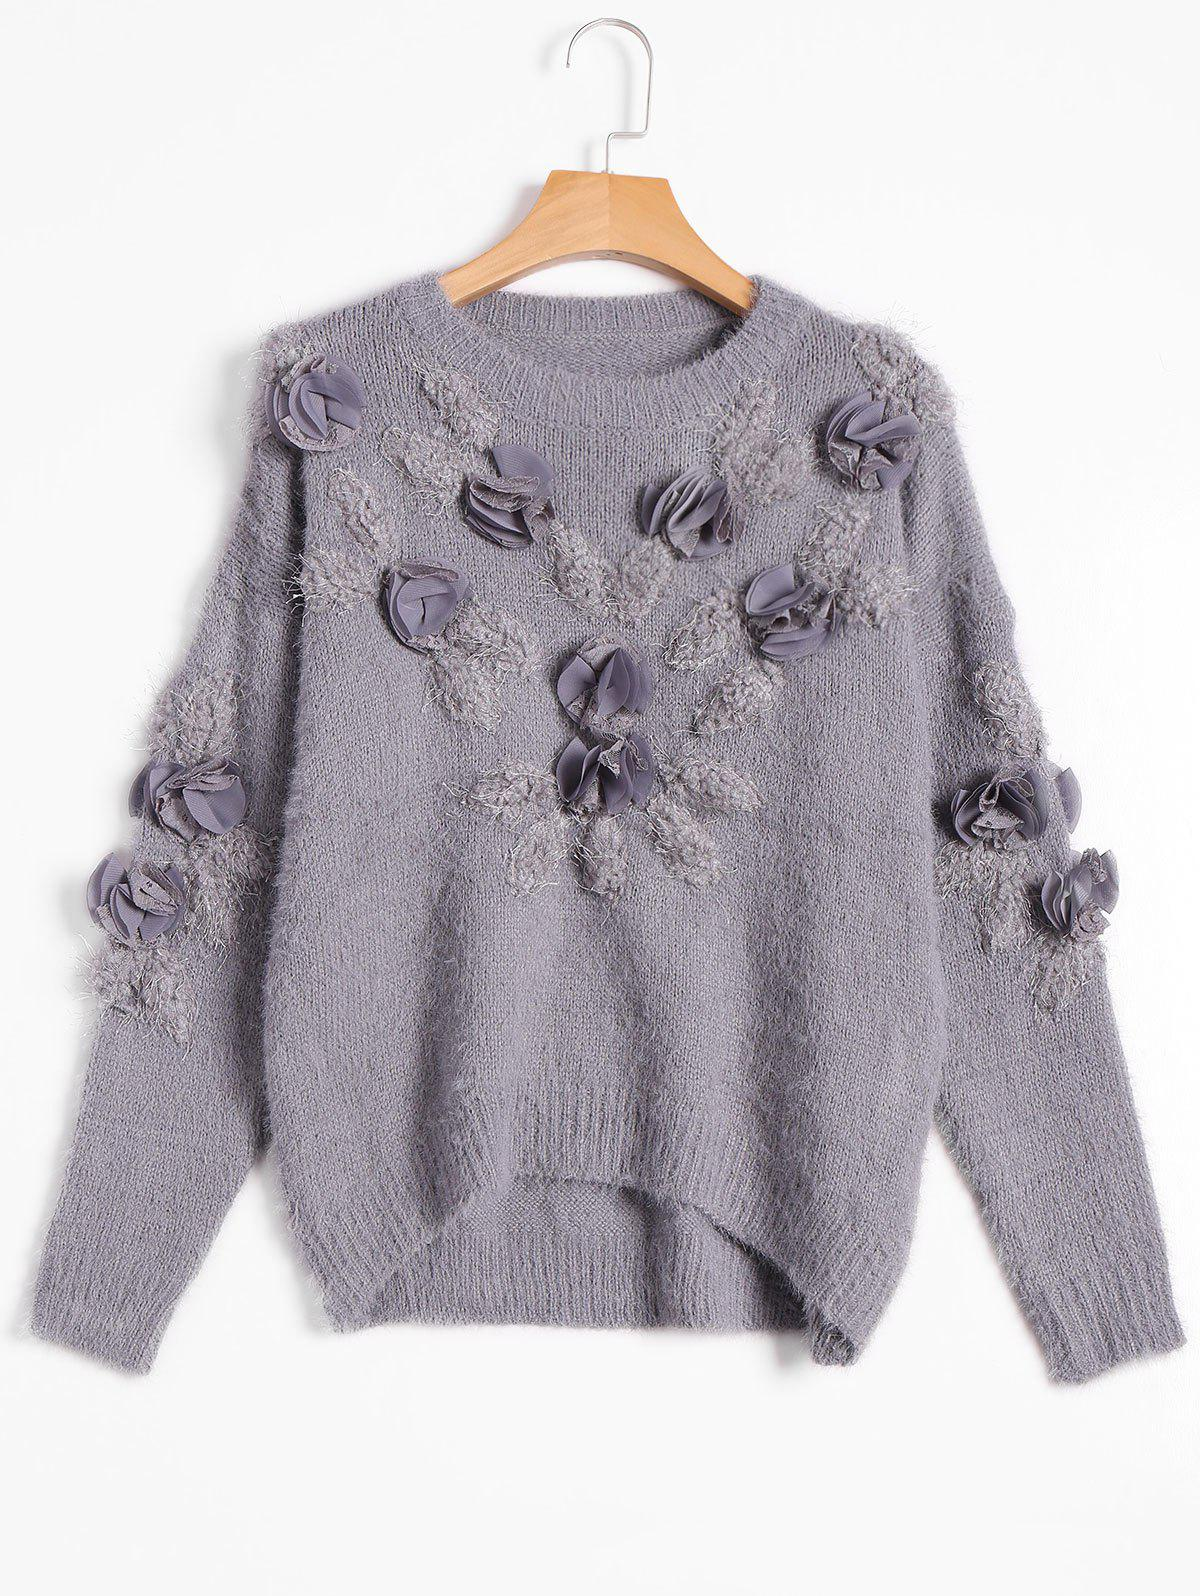 Patched Fuzzy Bowknot Applique Sweater